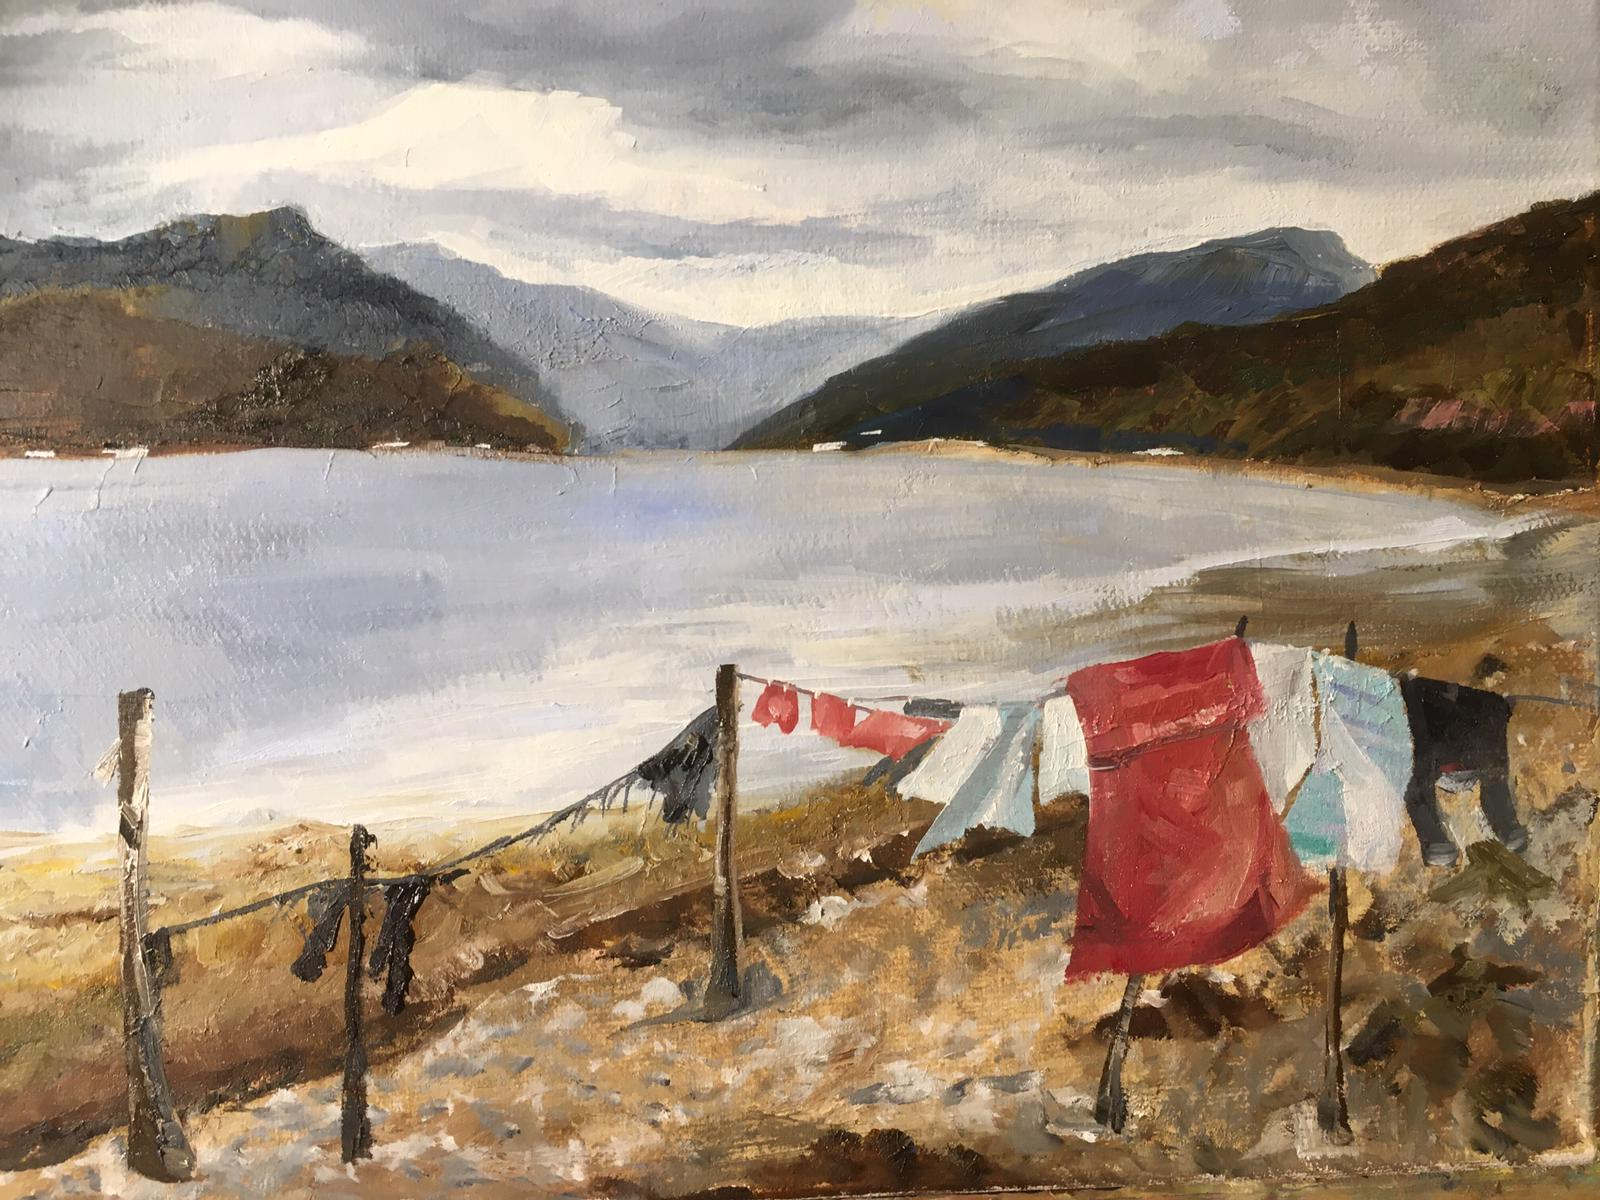 Laundry, Lochcarron, Wester Ross